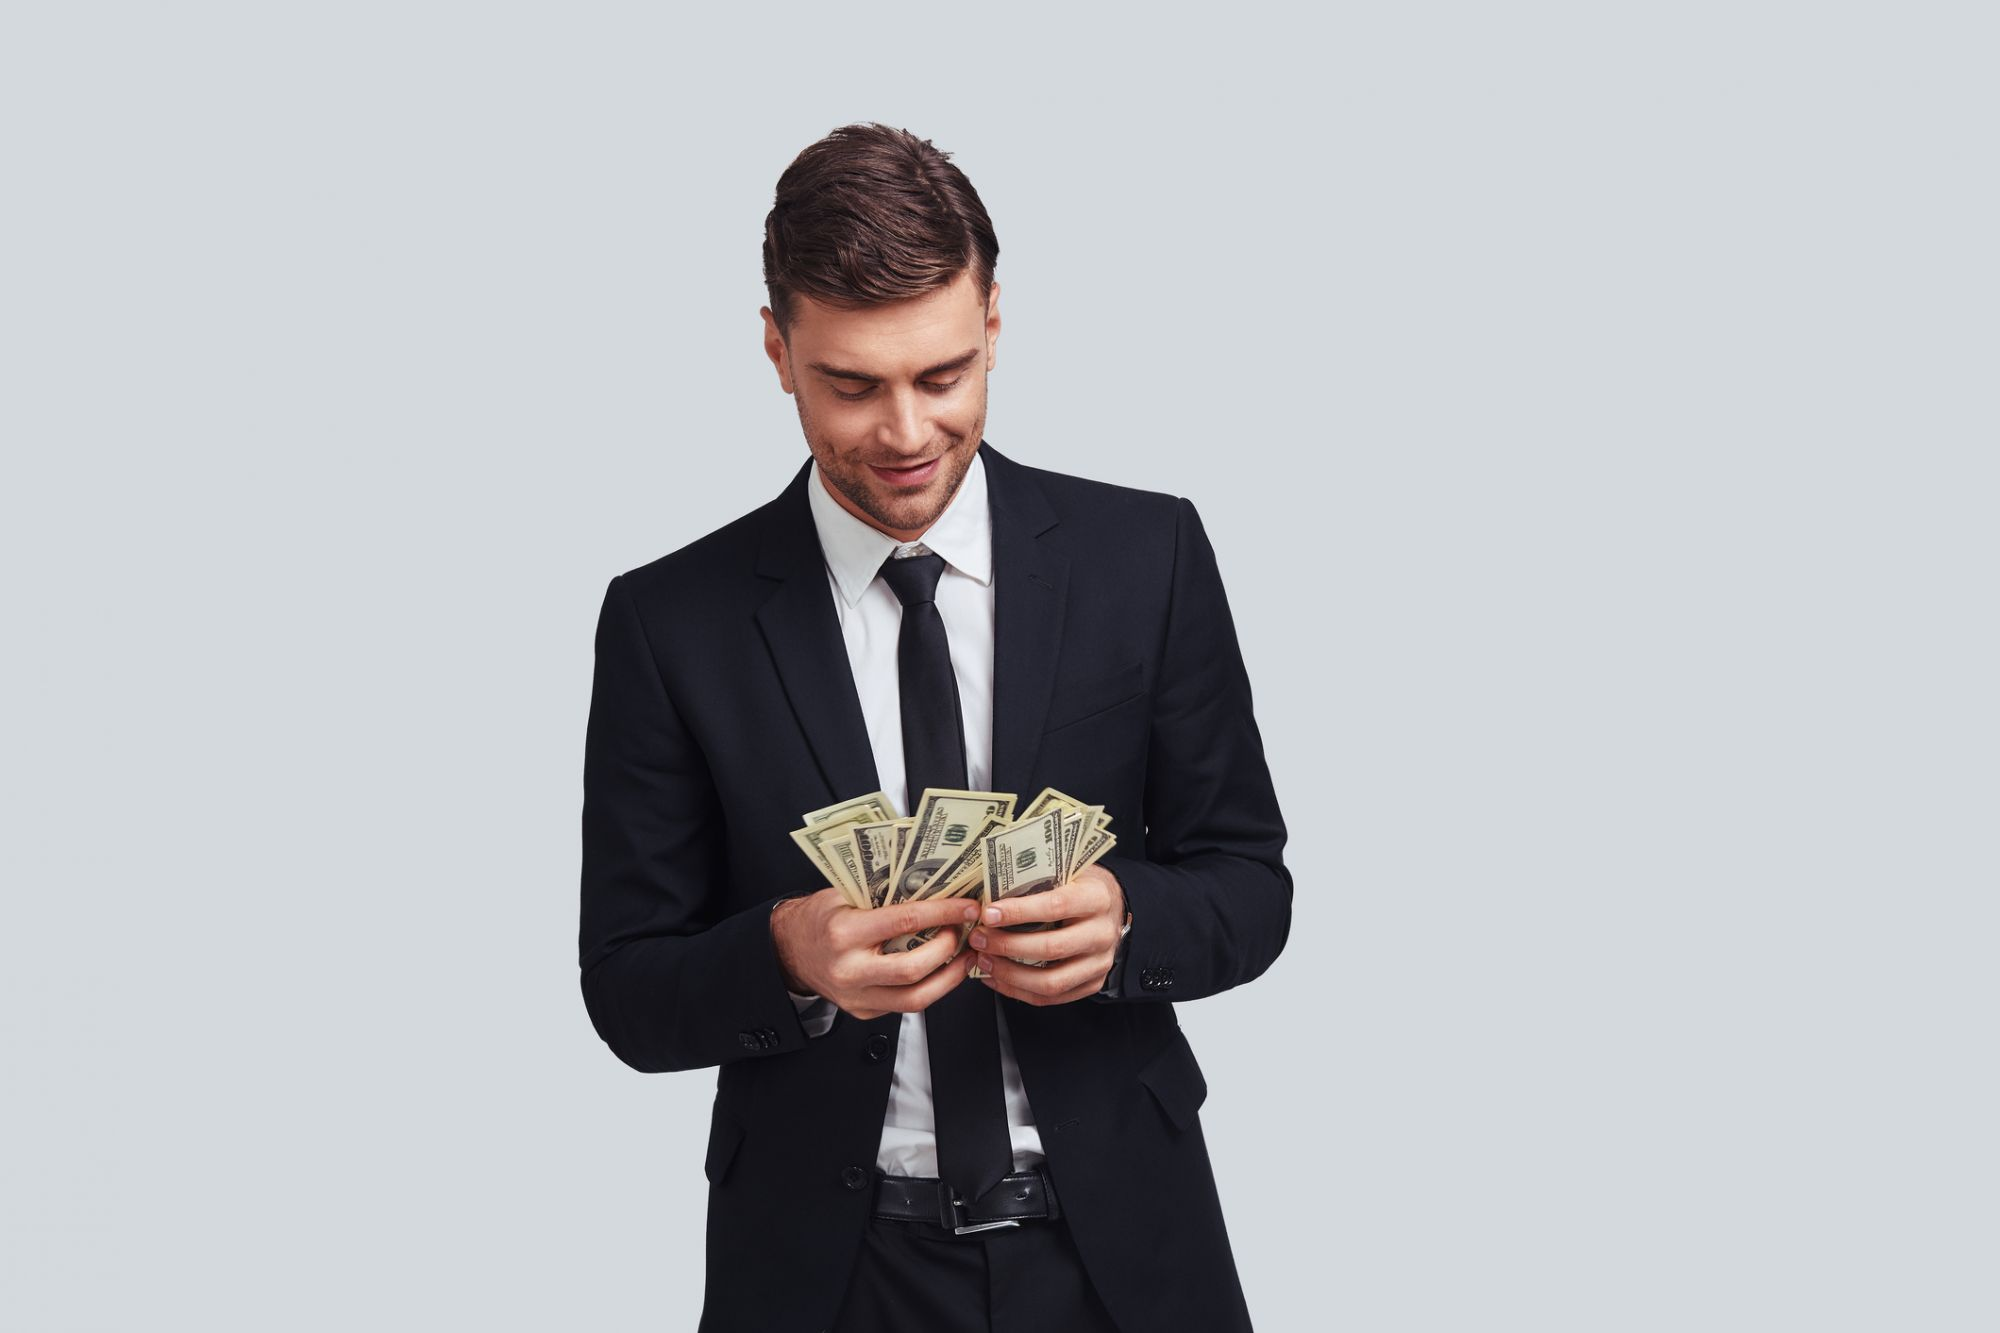 5 Ways to Start a Business with Cheap or Free Money